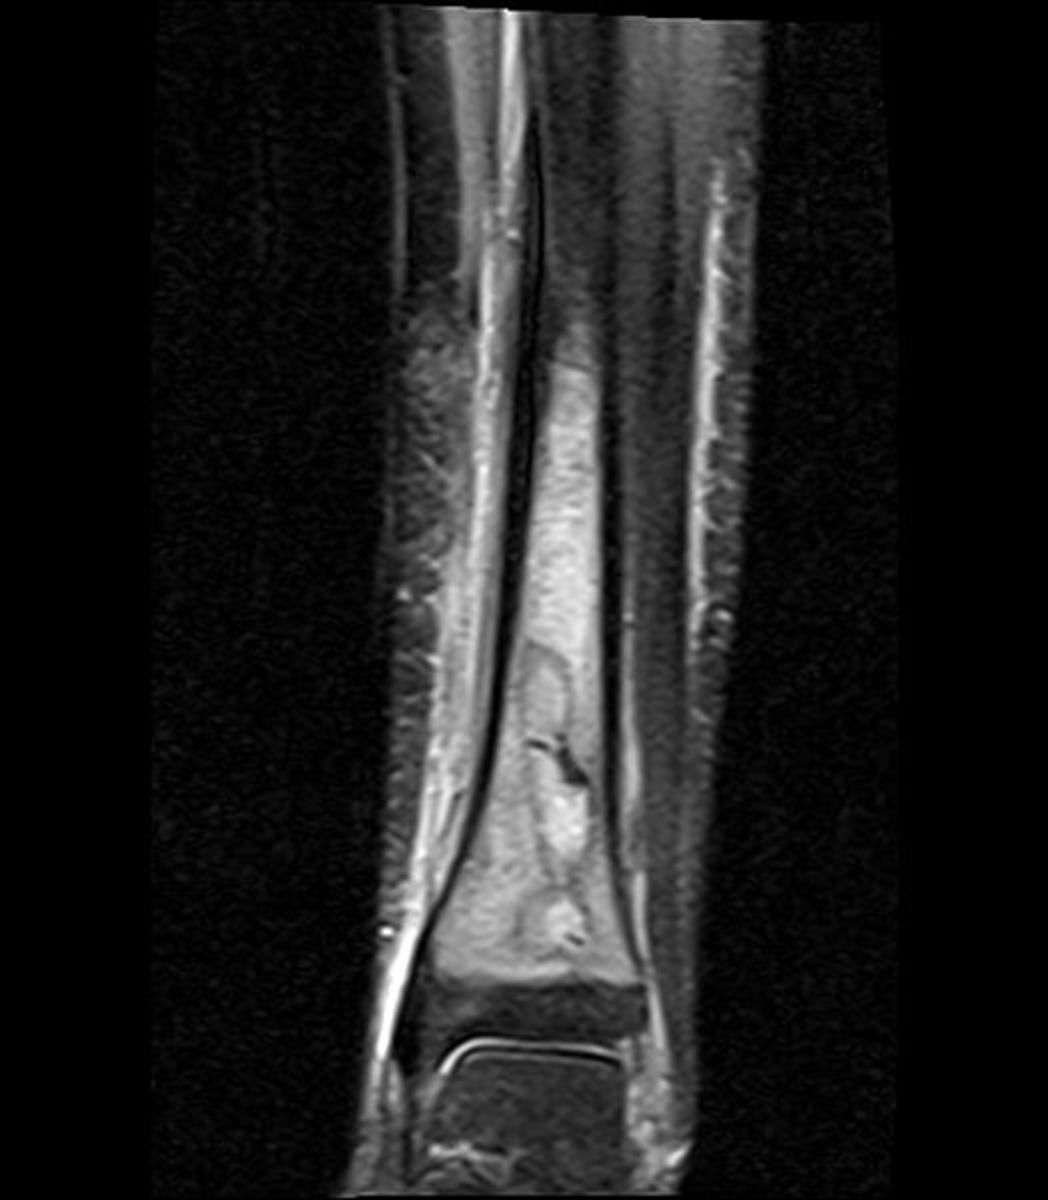 X-RAY showing an abscess on ankle and osteomyelitis of the bone.